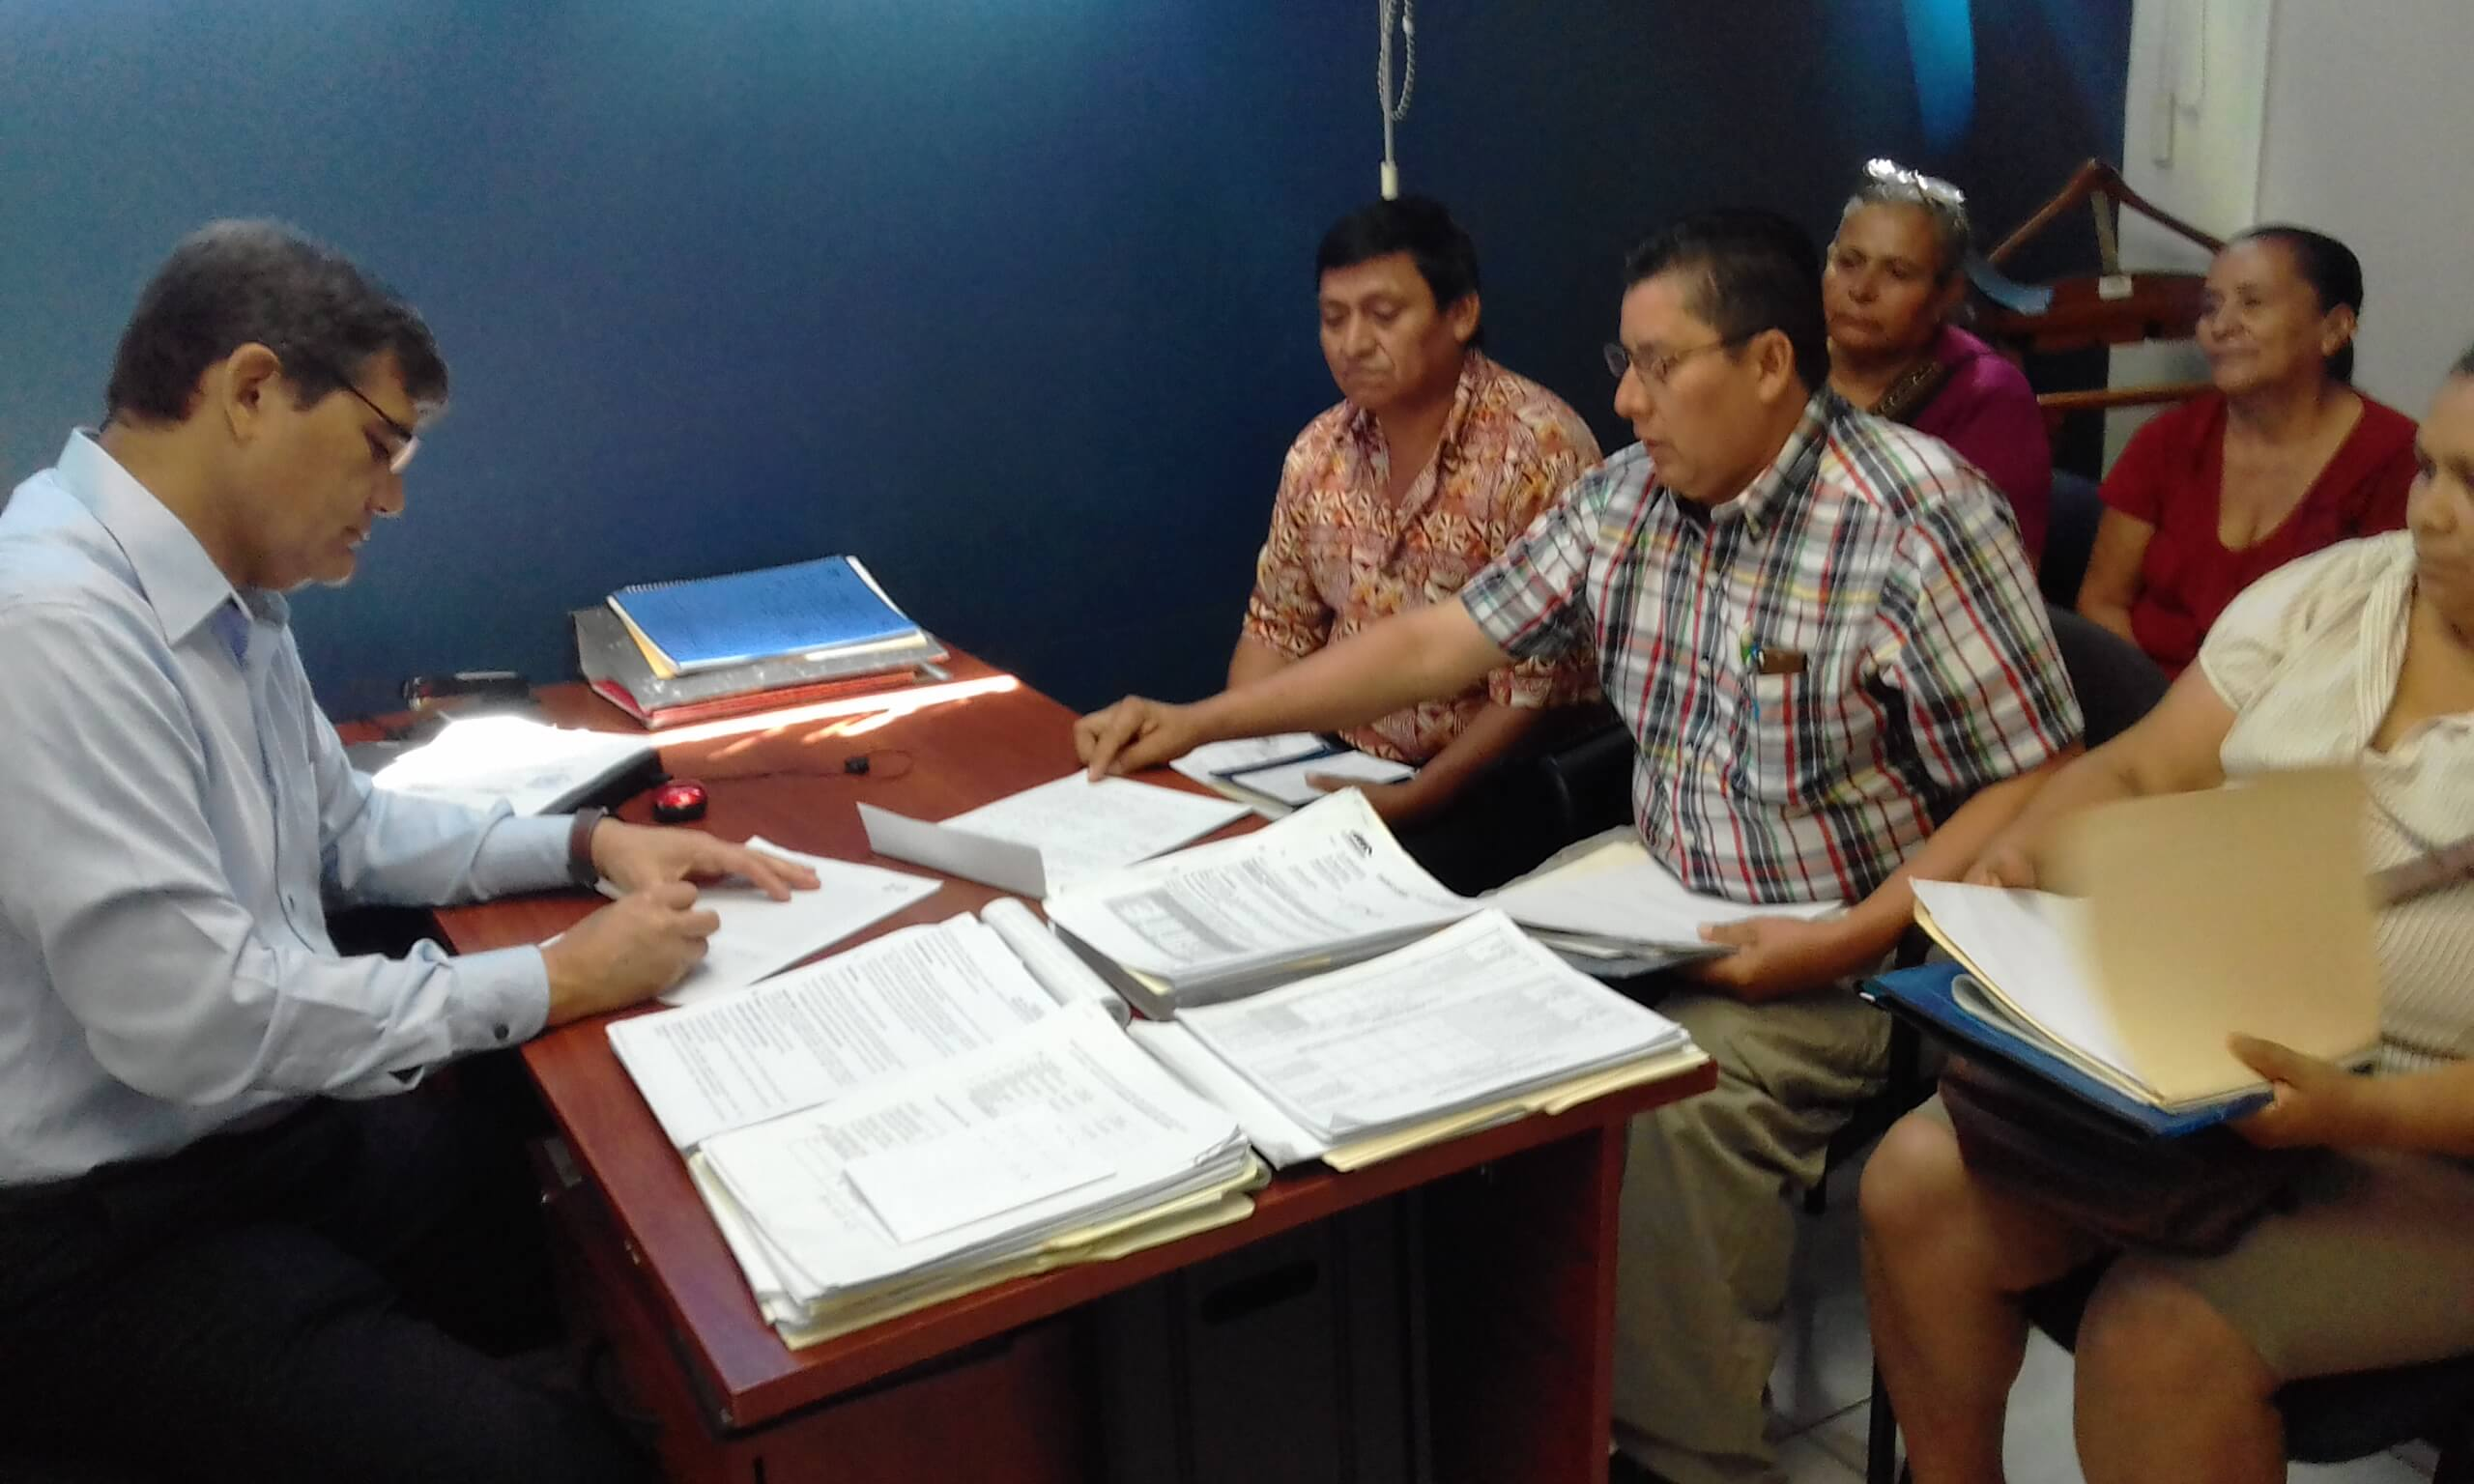 COFOA Leaders Meet With The Manager Of FODAVIPO Regarding Faulty Property Deeds In Rosario